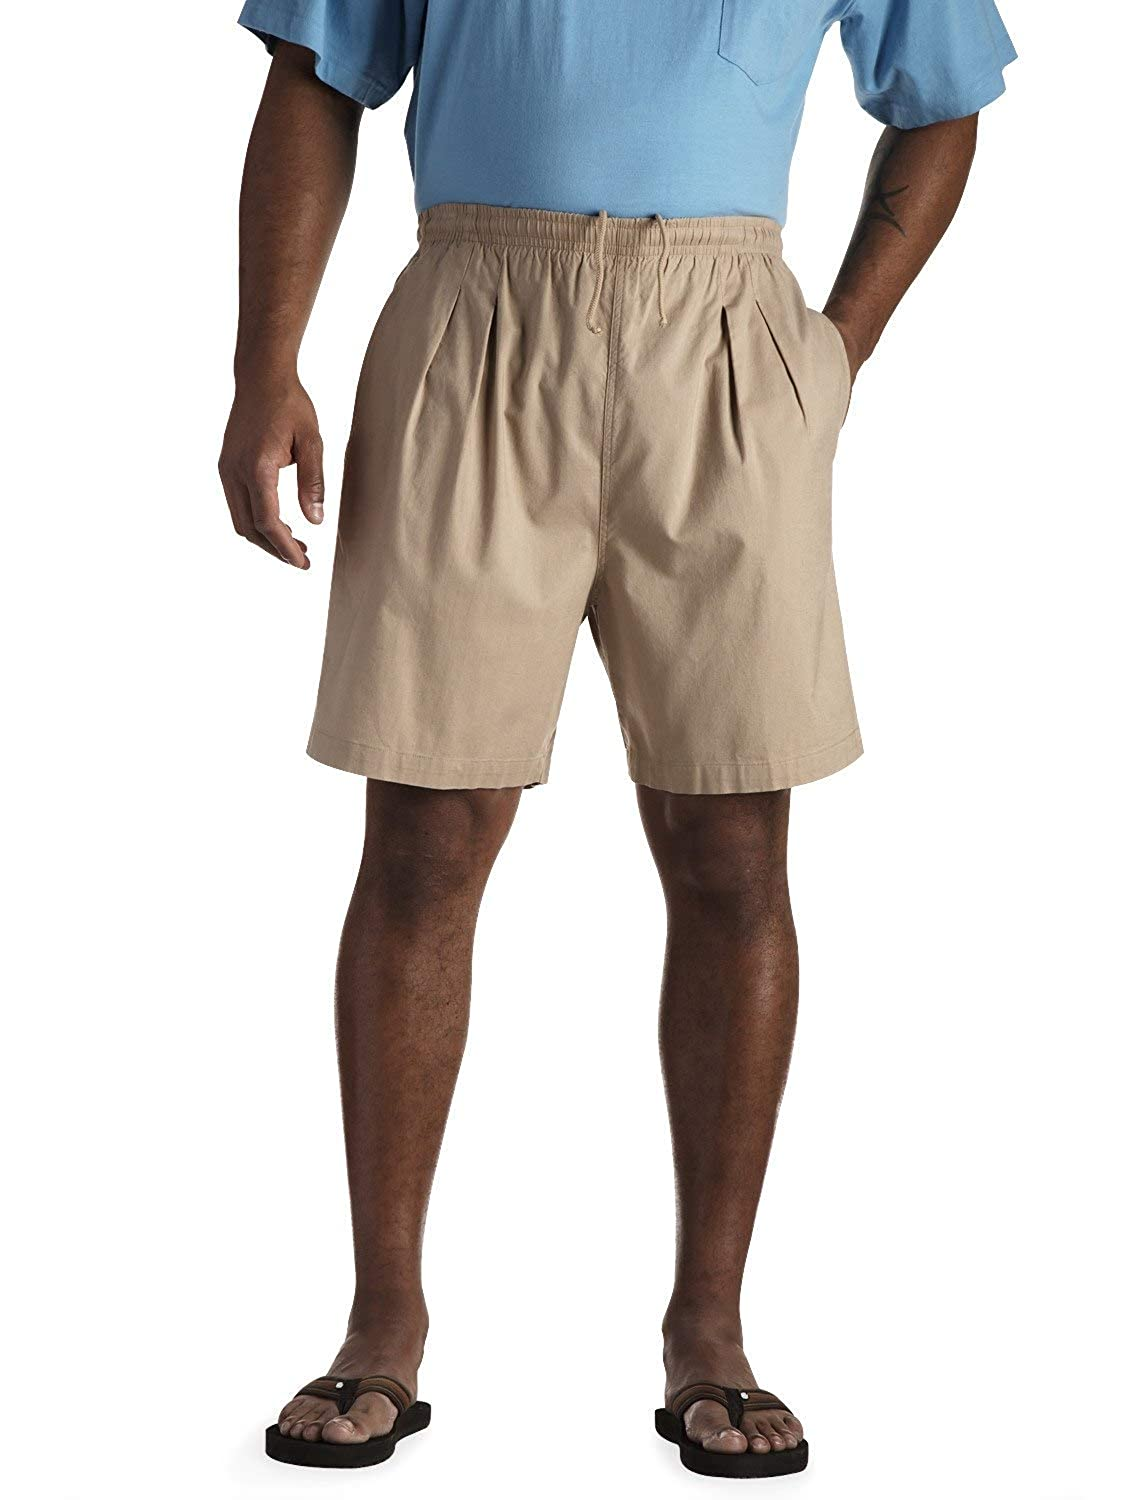 Canyon Ridge DXL Big and Tall Sheeting Beach Shorts